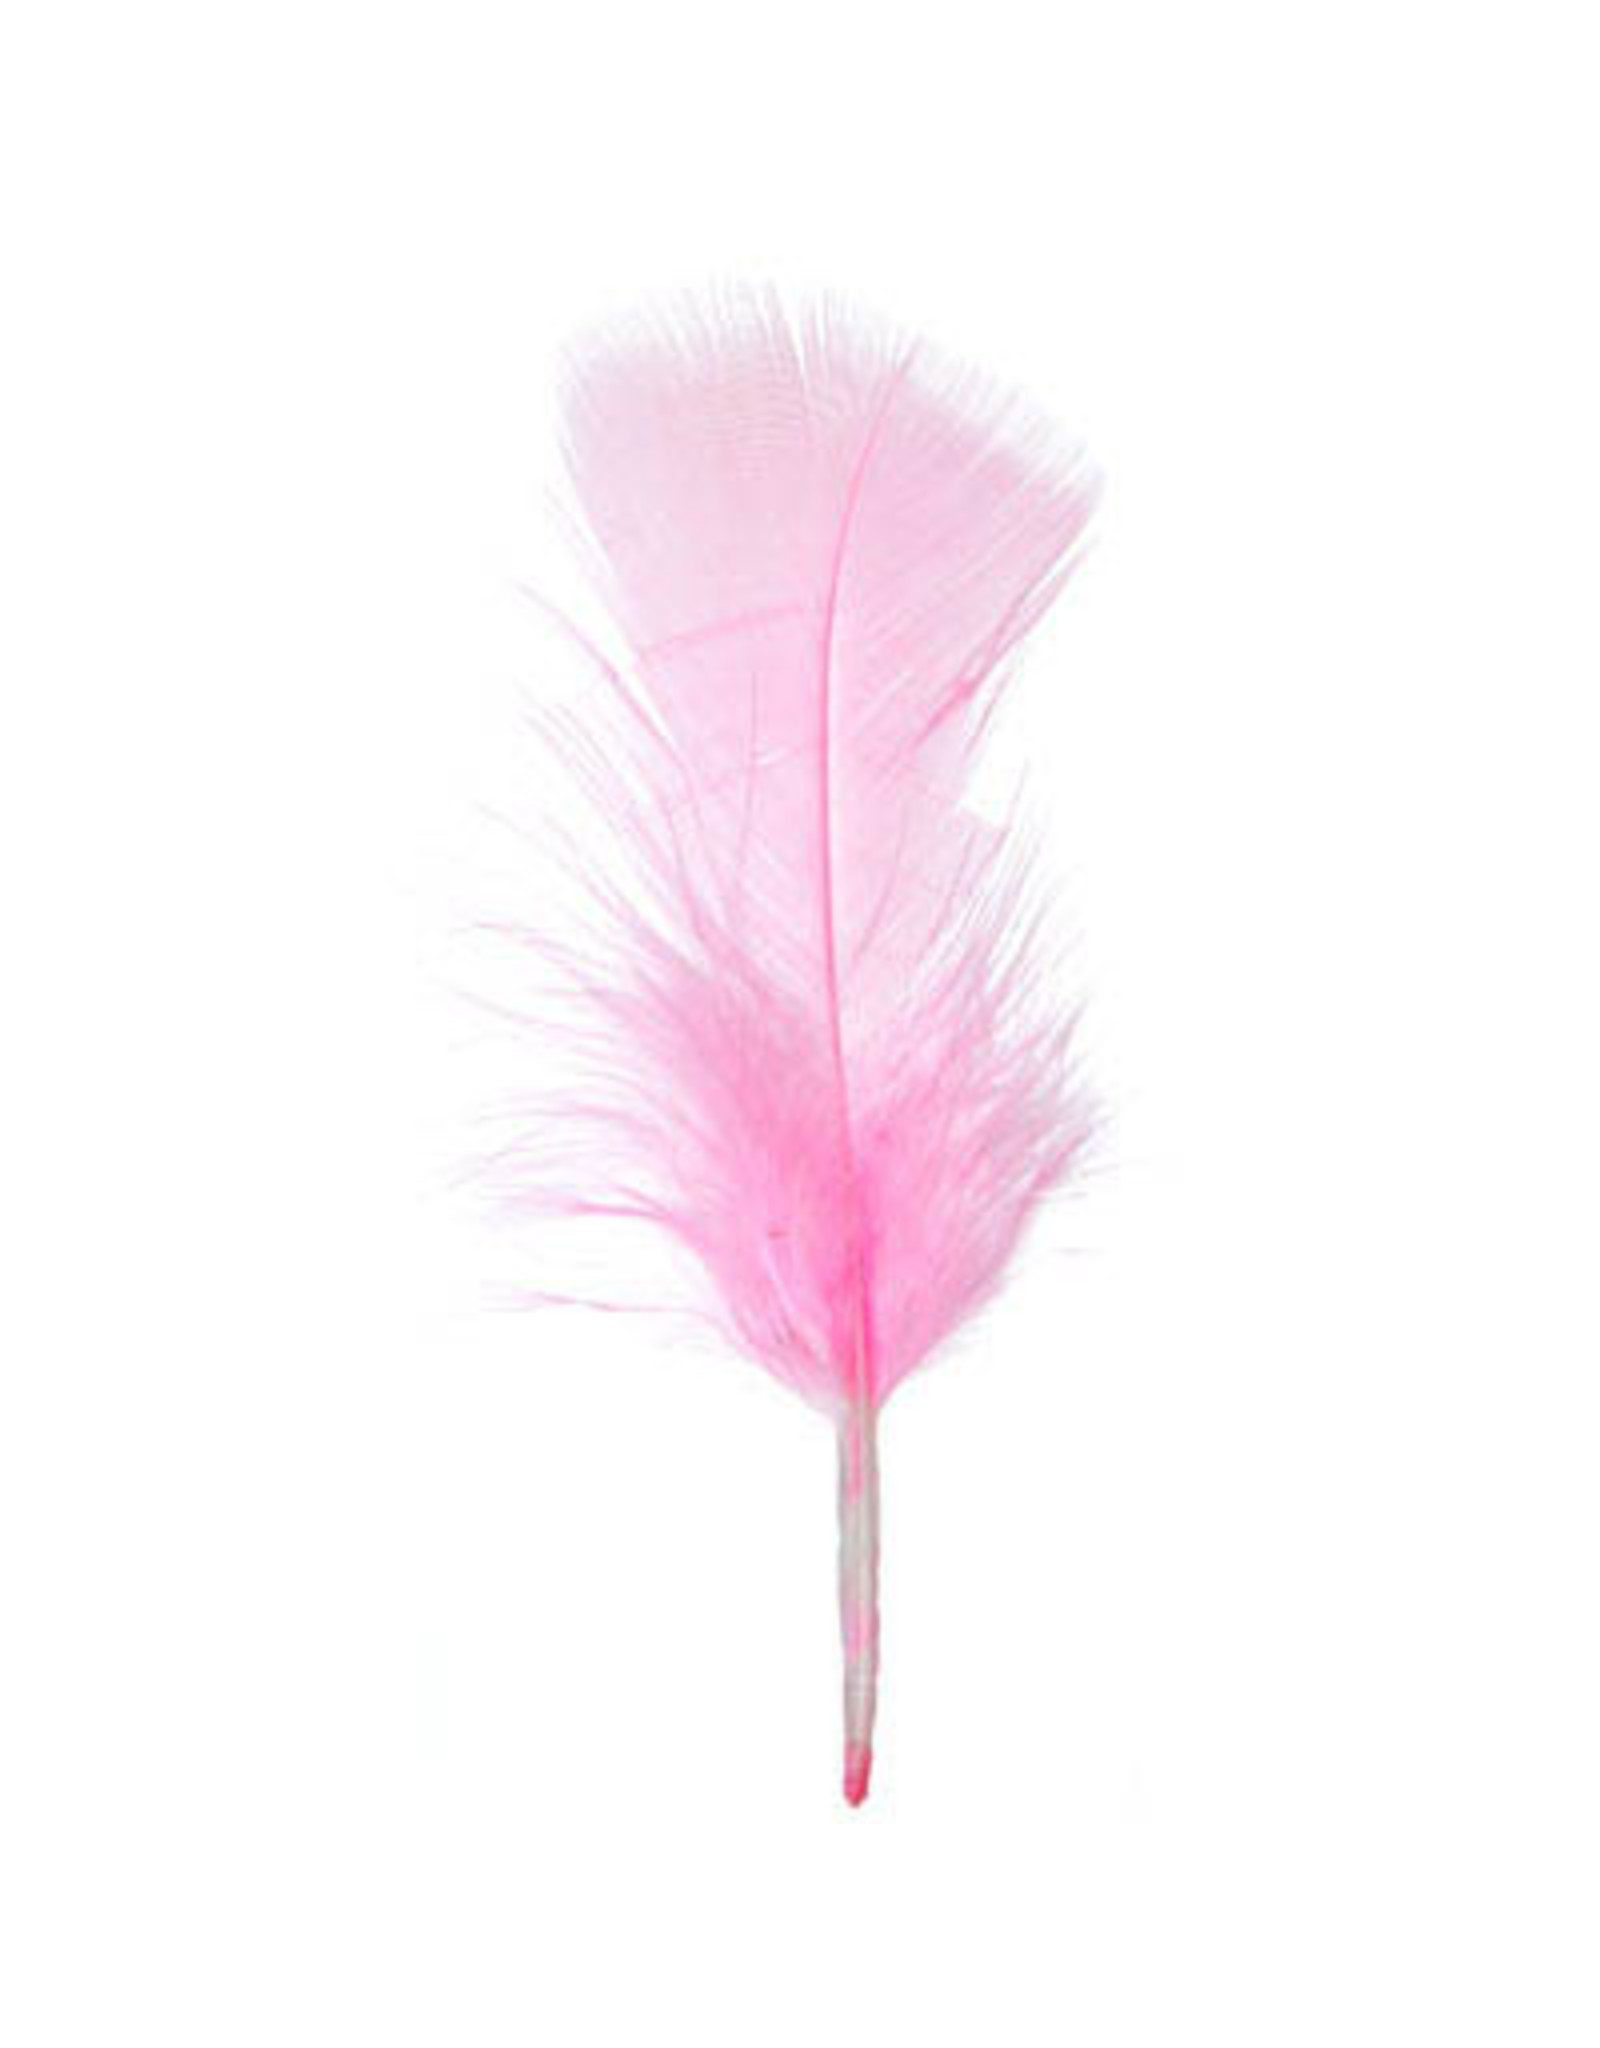 Marabou Feathers Pink 6g